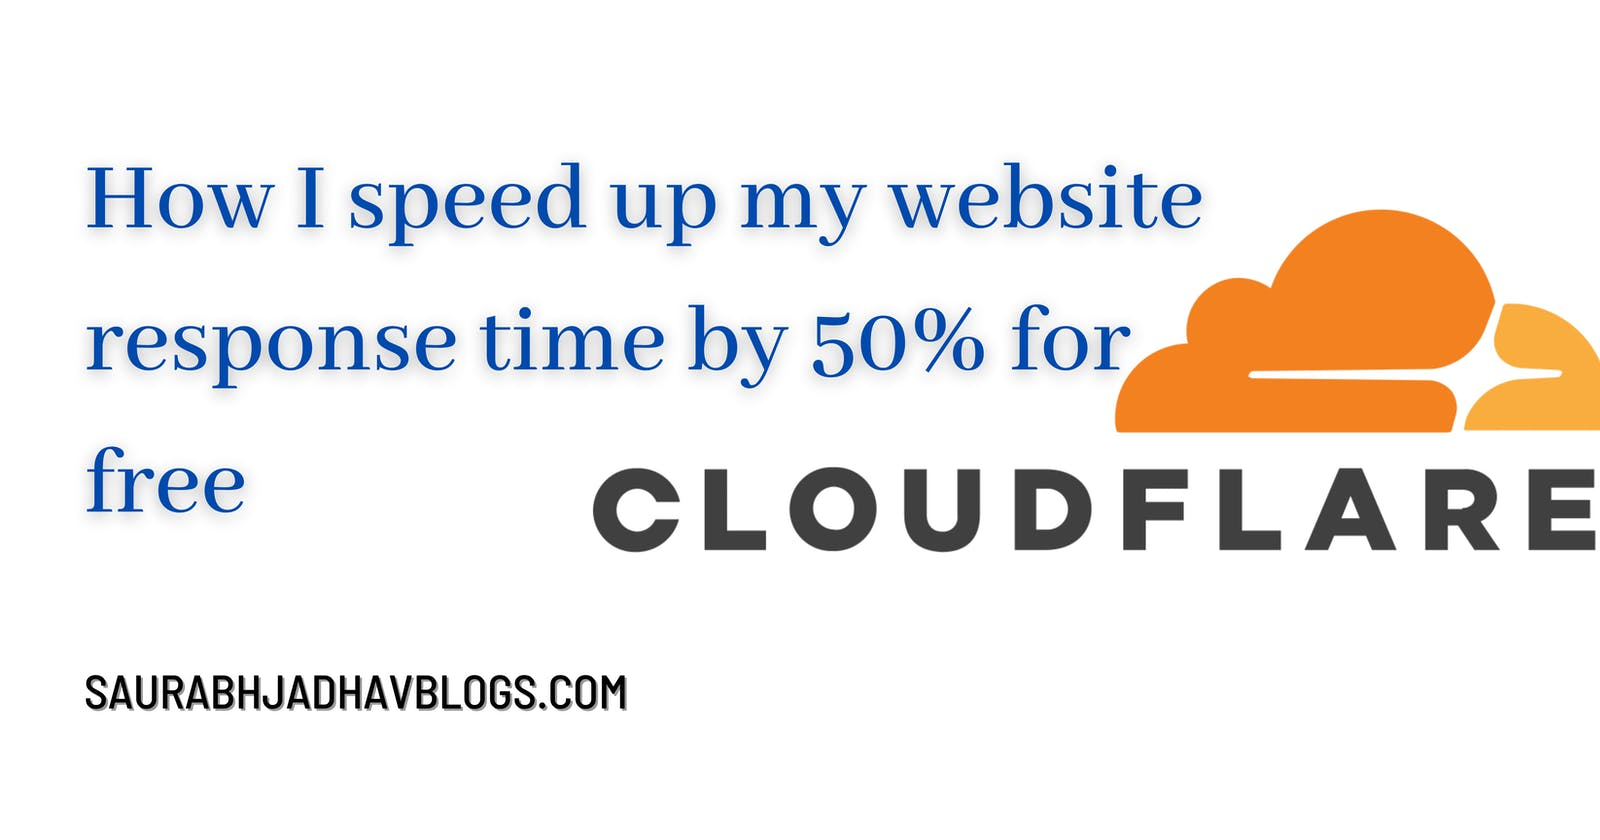 How I speed up my website response time by 50% for free (Cloudfare)